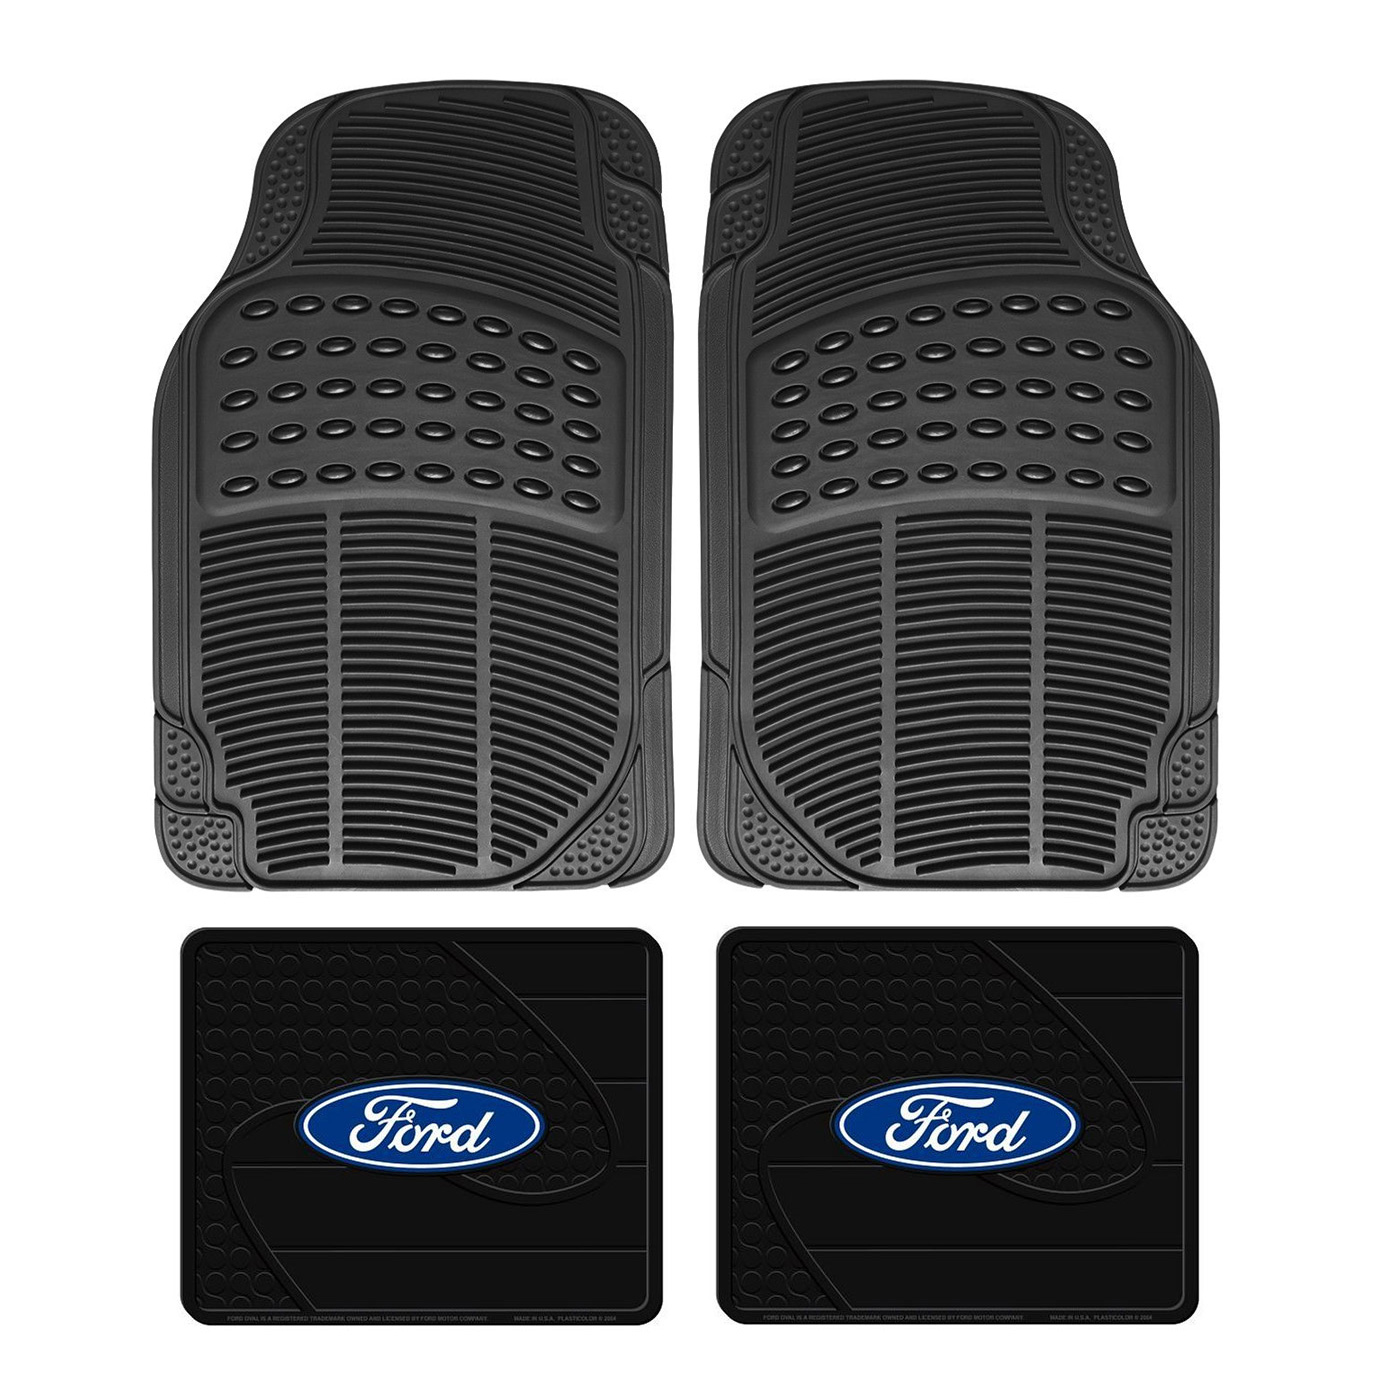 Details about Front Rear Car Truck All Weather Rubber Floor Mats Set FORD  Factory Logo Utility.